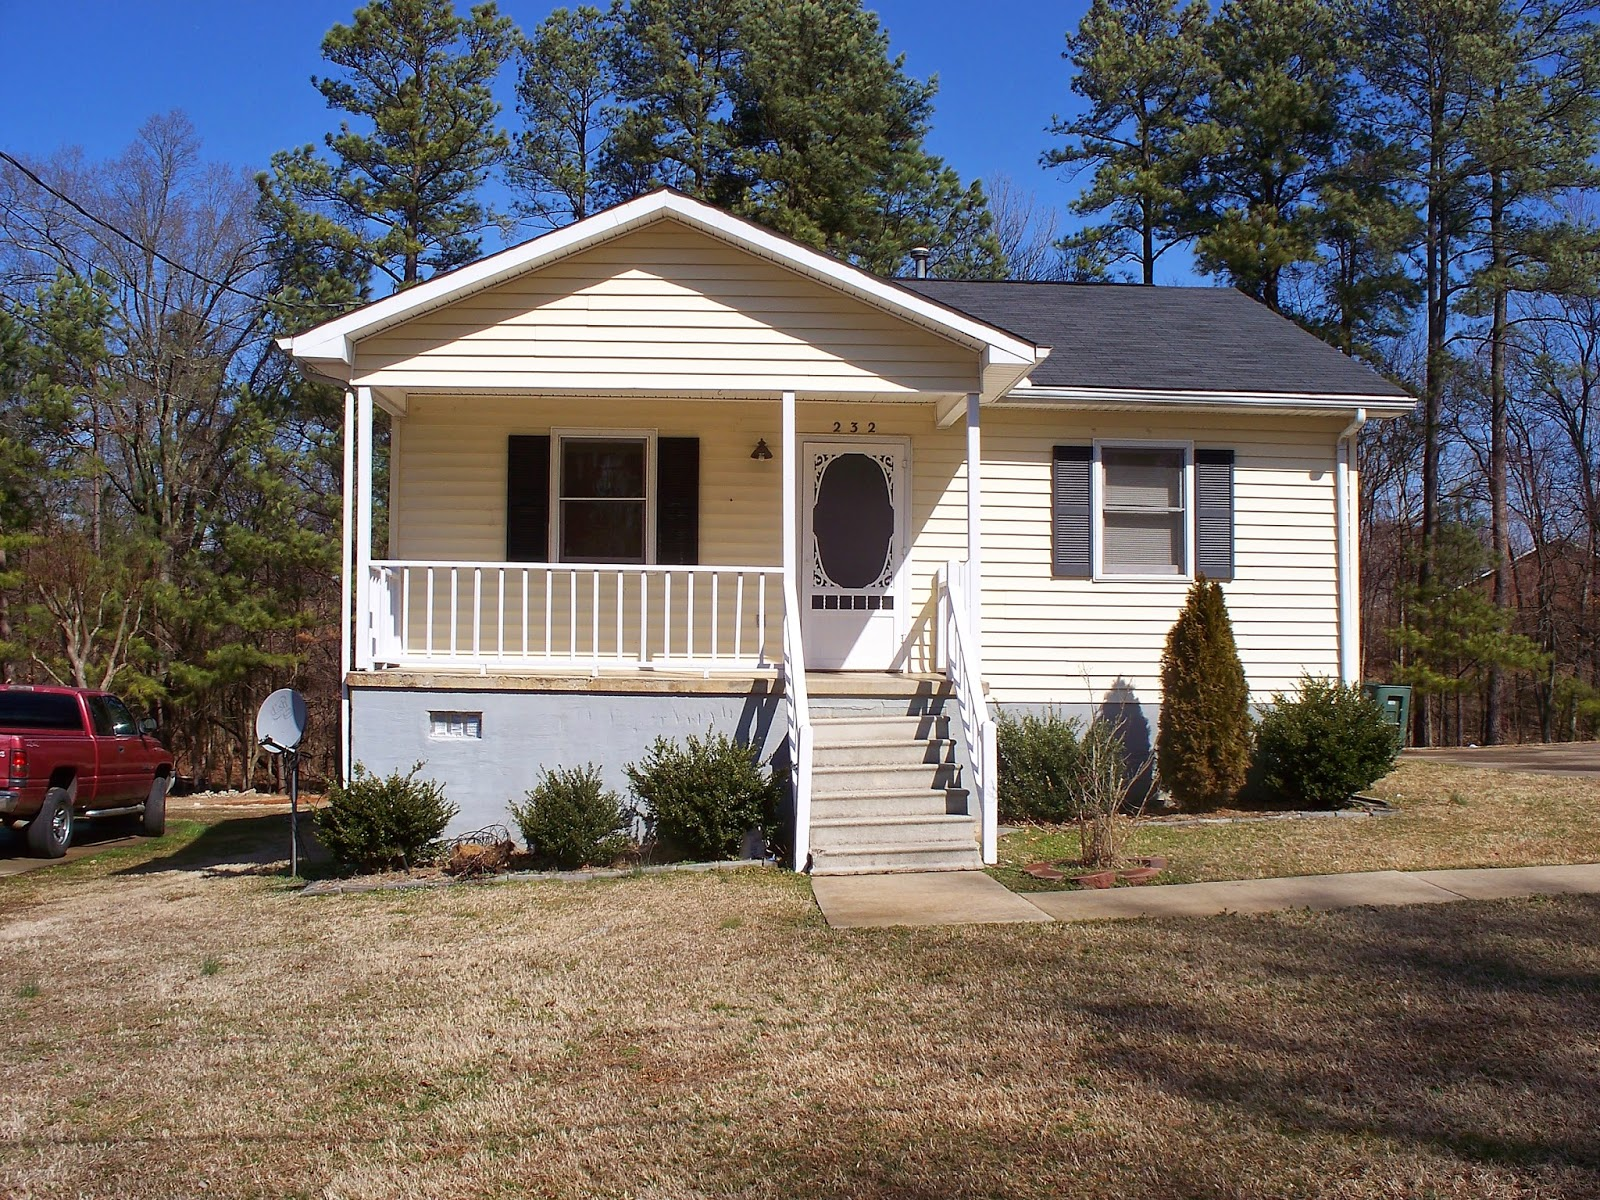 rocking chair realty white wooden chairs salisbury, north carolina real estate: starter home? sweet income property? this is it!